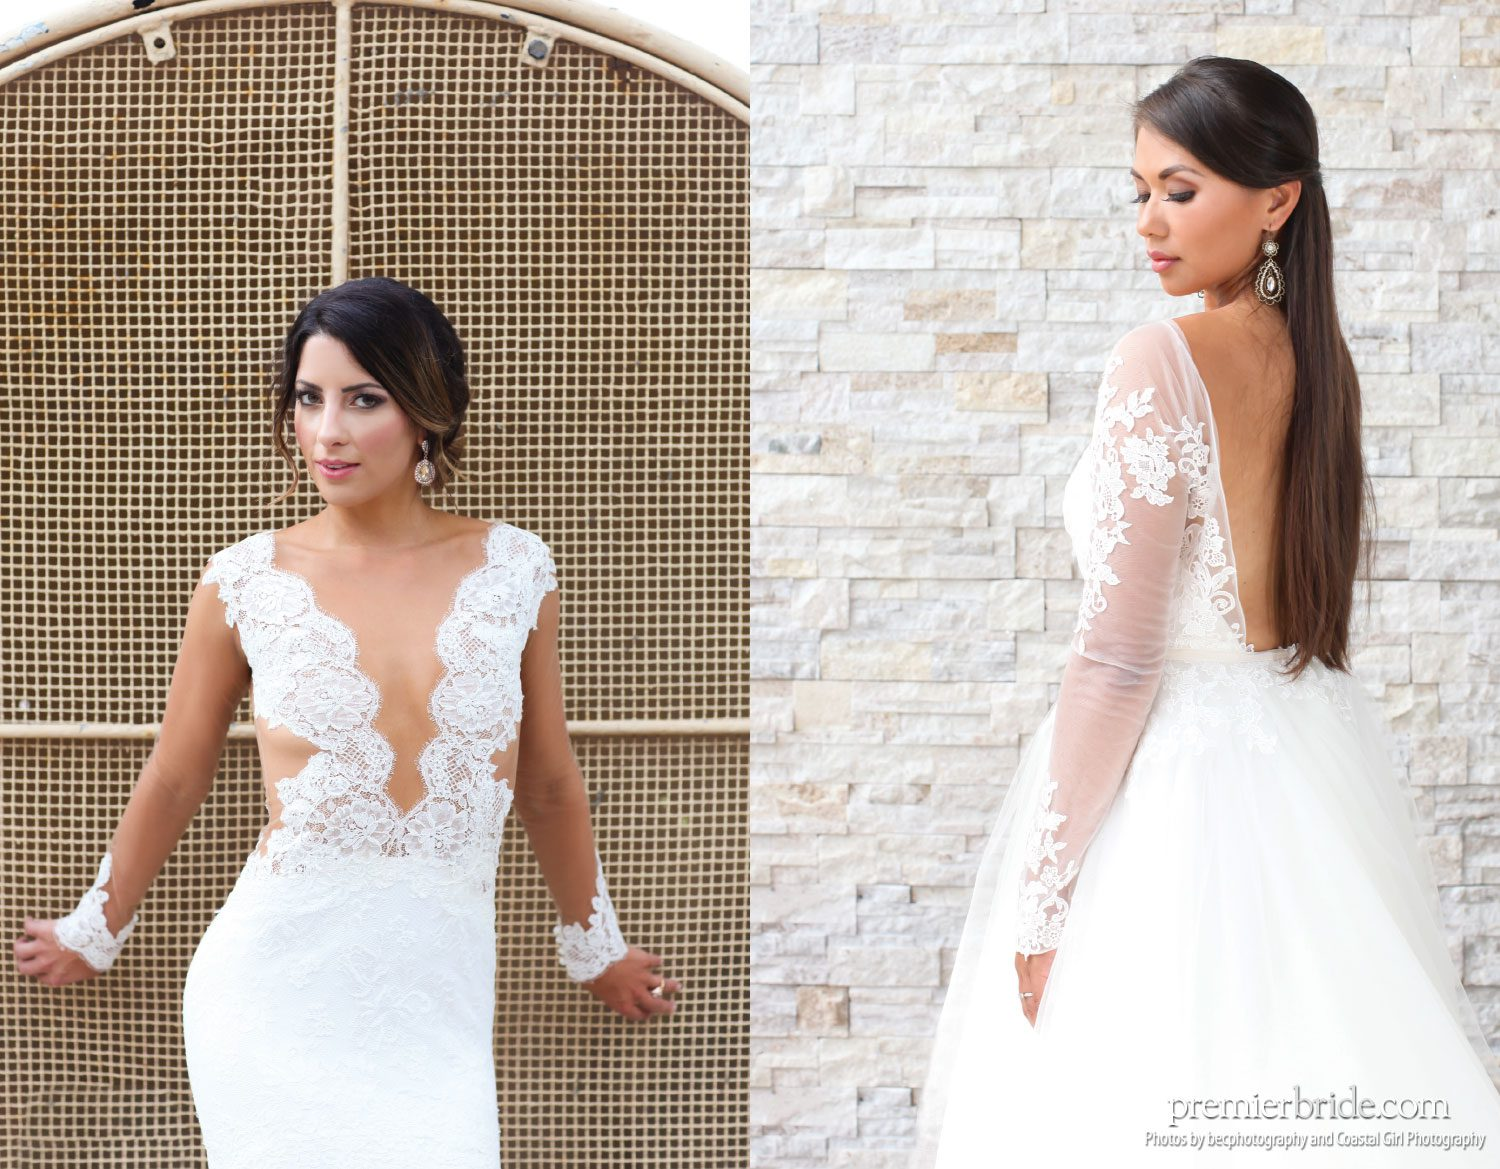 Michael's Formalwear, Bridals & More, photos by becphotography